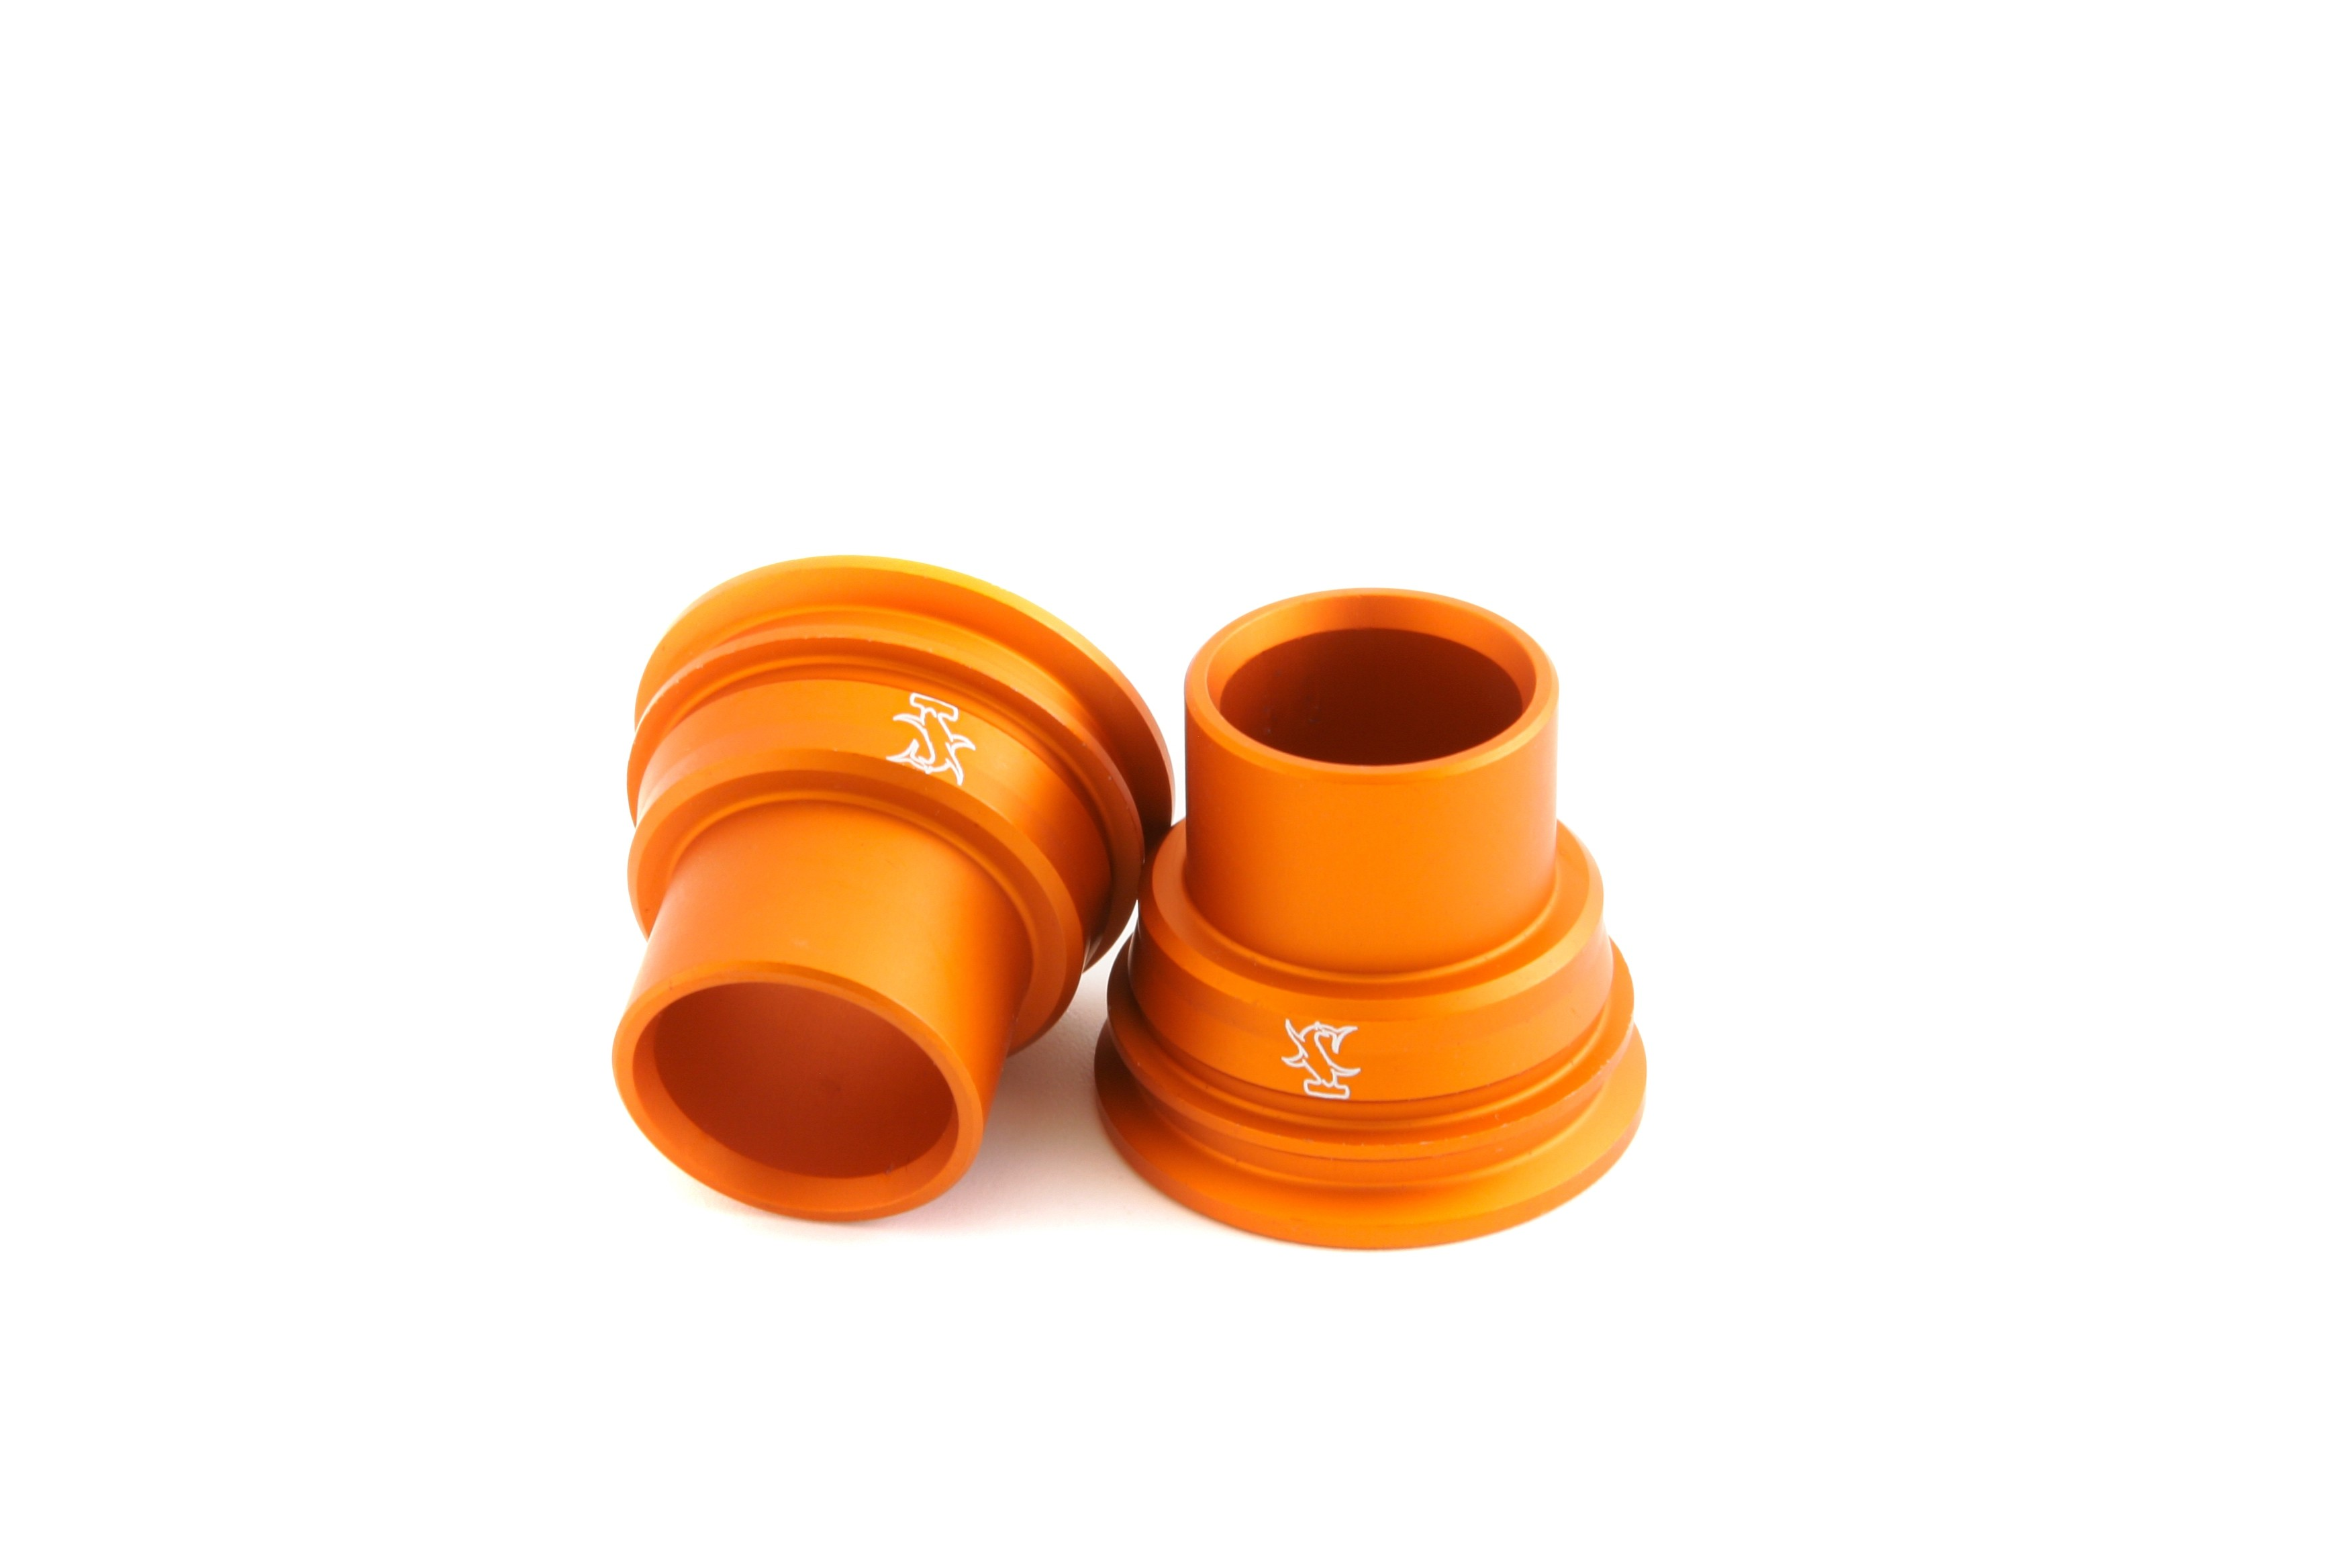 KTM/Husqvarna Type 1 Rear Wheel Spacers